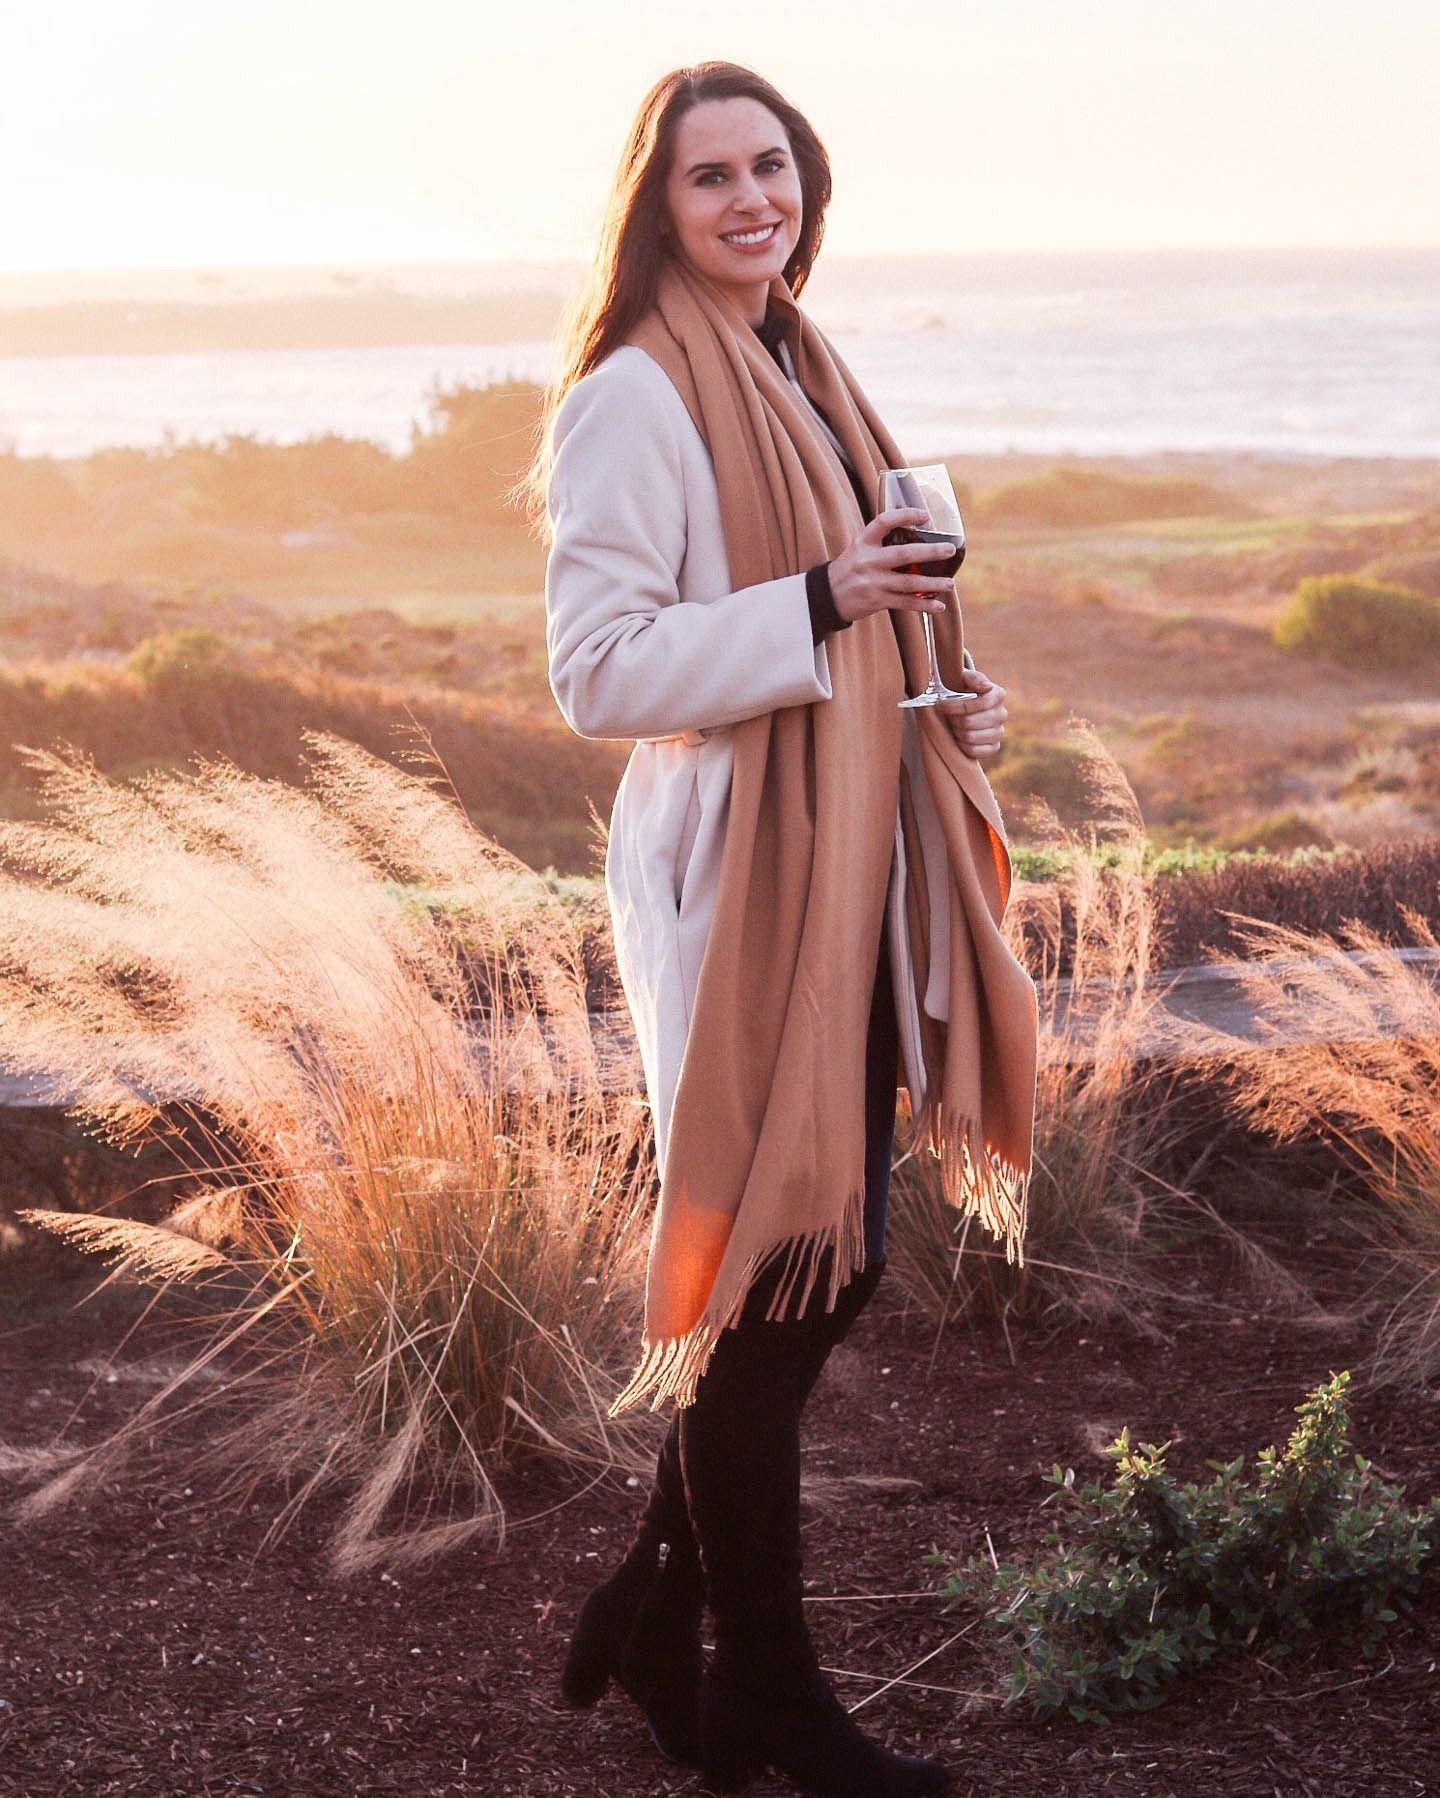 Cheers to the (almost) weekend! I'm so excited for the long weekend! Looking forward to relaxing and watching the NFL Championship games - go @49ers! #winterapparel #winterlooks #winterwardrobe #coldweatherstyle #wintertrends #outfitdiary #stylepost #fashioninspo #fashioninspired #realoutfit #ootdstyle #ootdsubmit #whatimwearing #stylelover #neutraltones #neutralstyle #sfstyle #caliblogger #ilovecalifornia #calilifestyle #californiawinter #travelinspired #traveldames #darlingescape #pebblebeach